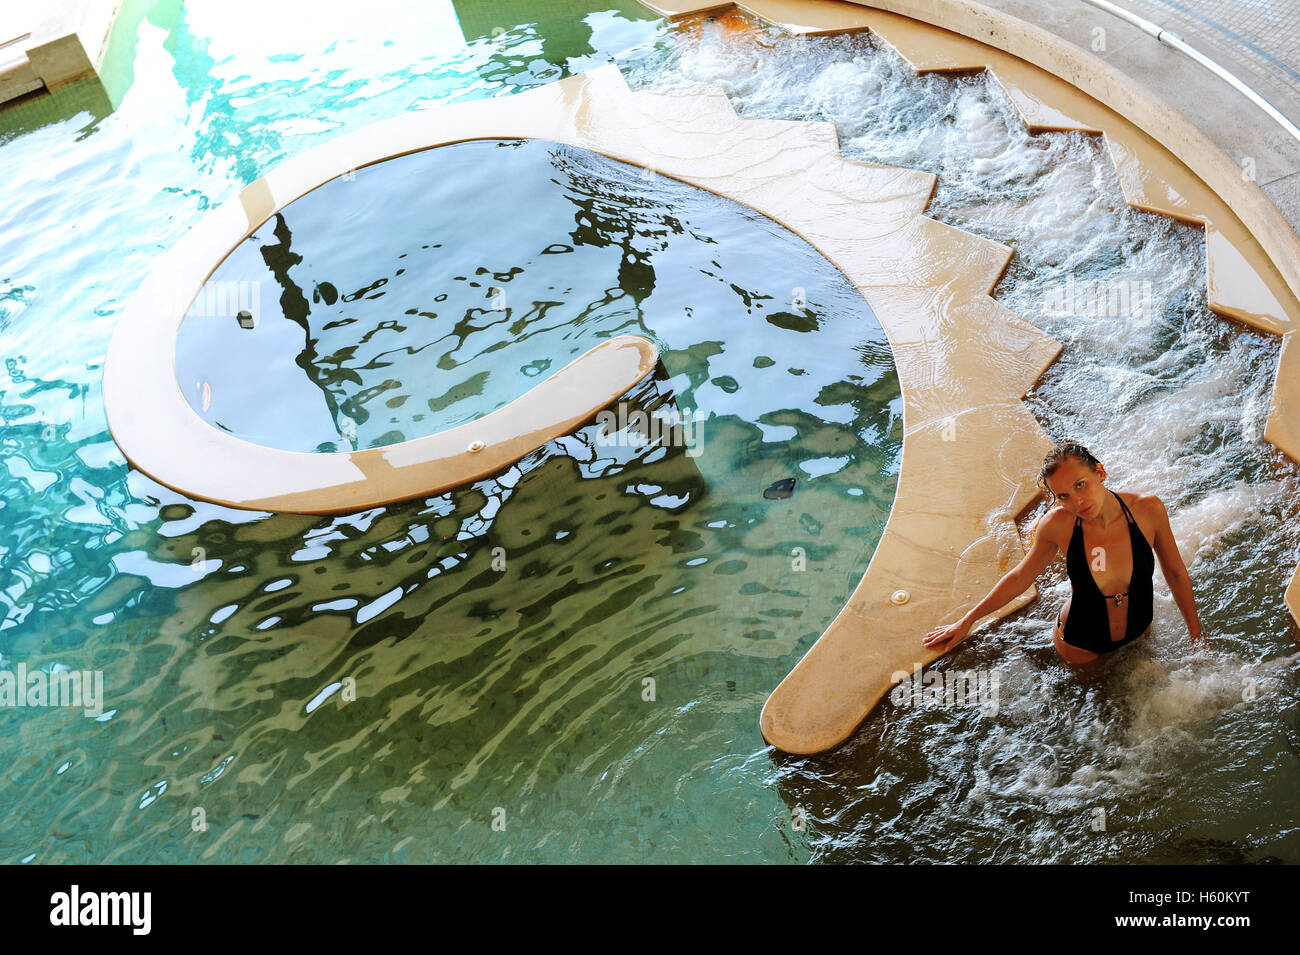 https://c8.alamy.com/comp/H60KYT/a-young-woman-in-the-thermal-indoor-pool-of-the-fonteverde-natural-H60KYT.jpg